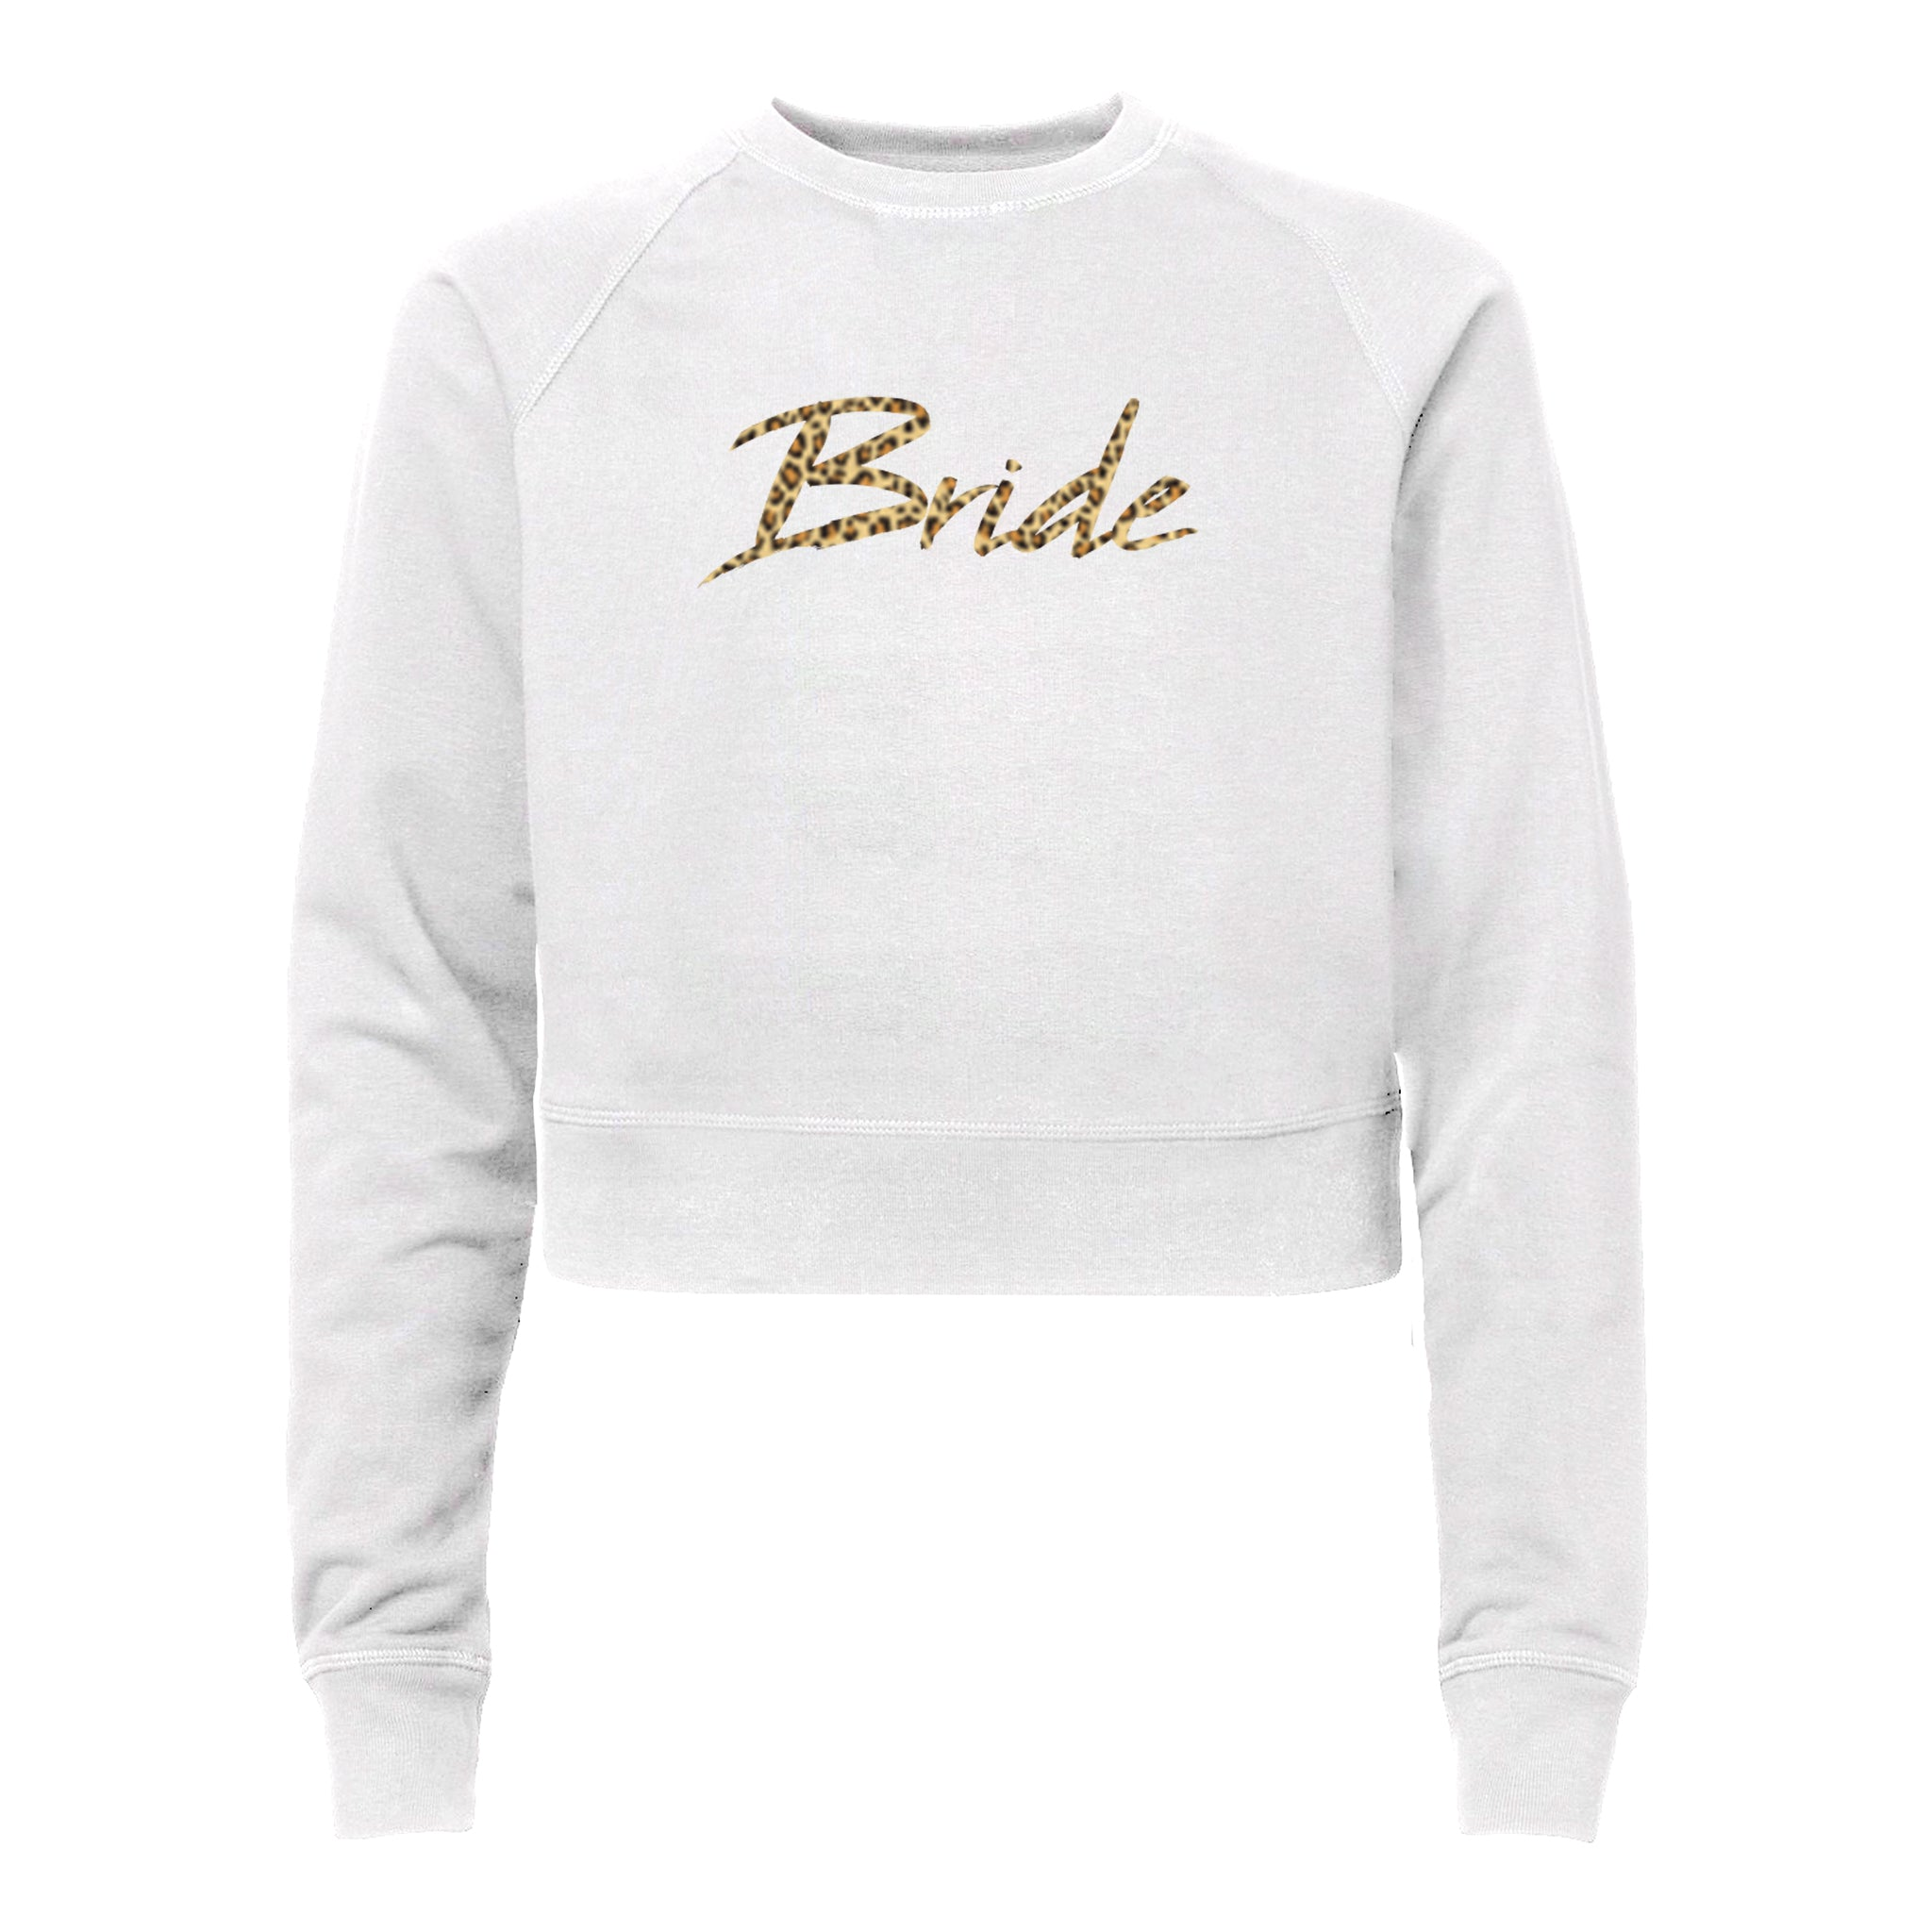 BRIDE W/ CHEETAH TEXT [WOMEN'S RAGLAN CROP CREWNECK SWEATSHIRT]